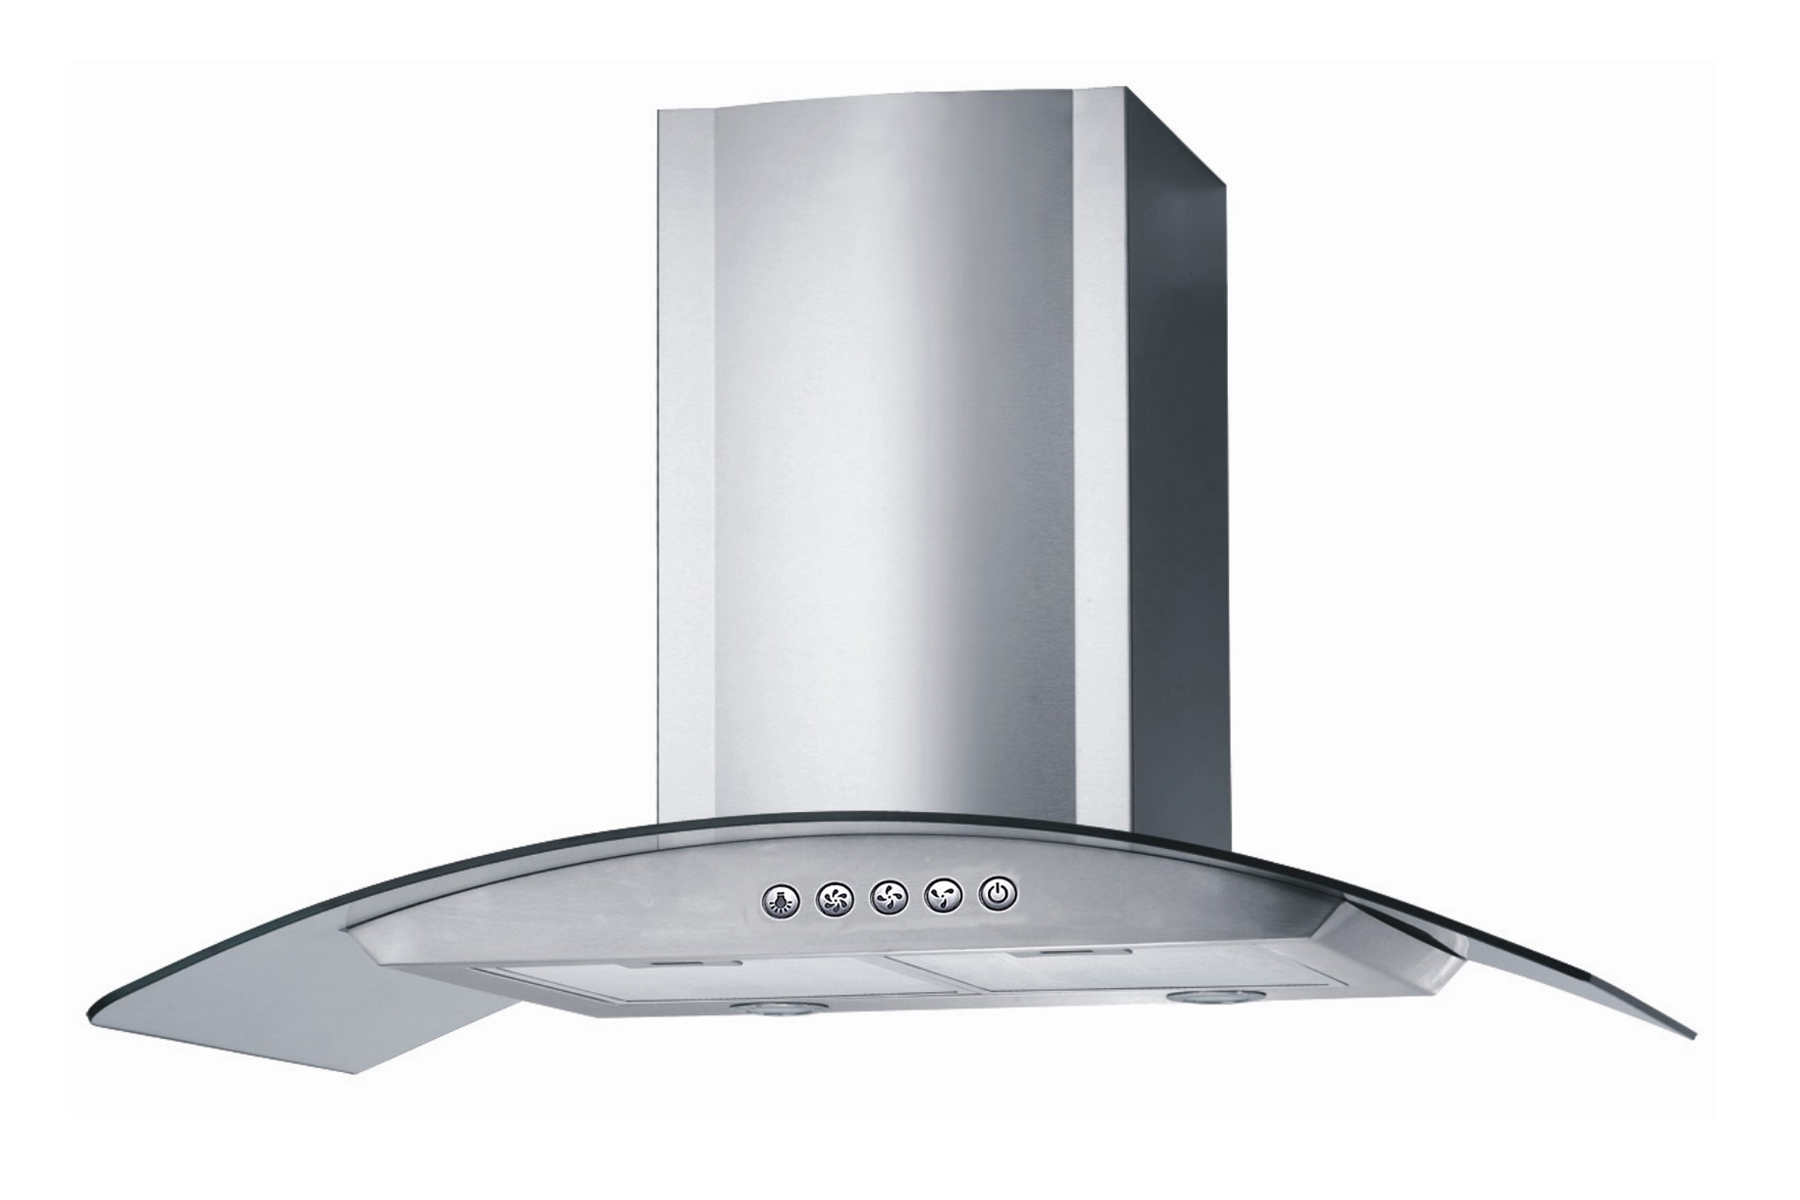 Stove Ventilation Systems : Stainless steel quot range hood wall mount speeds kitchen